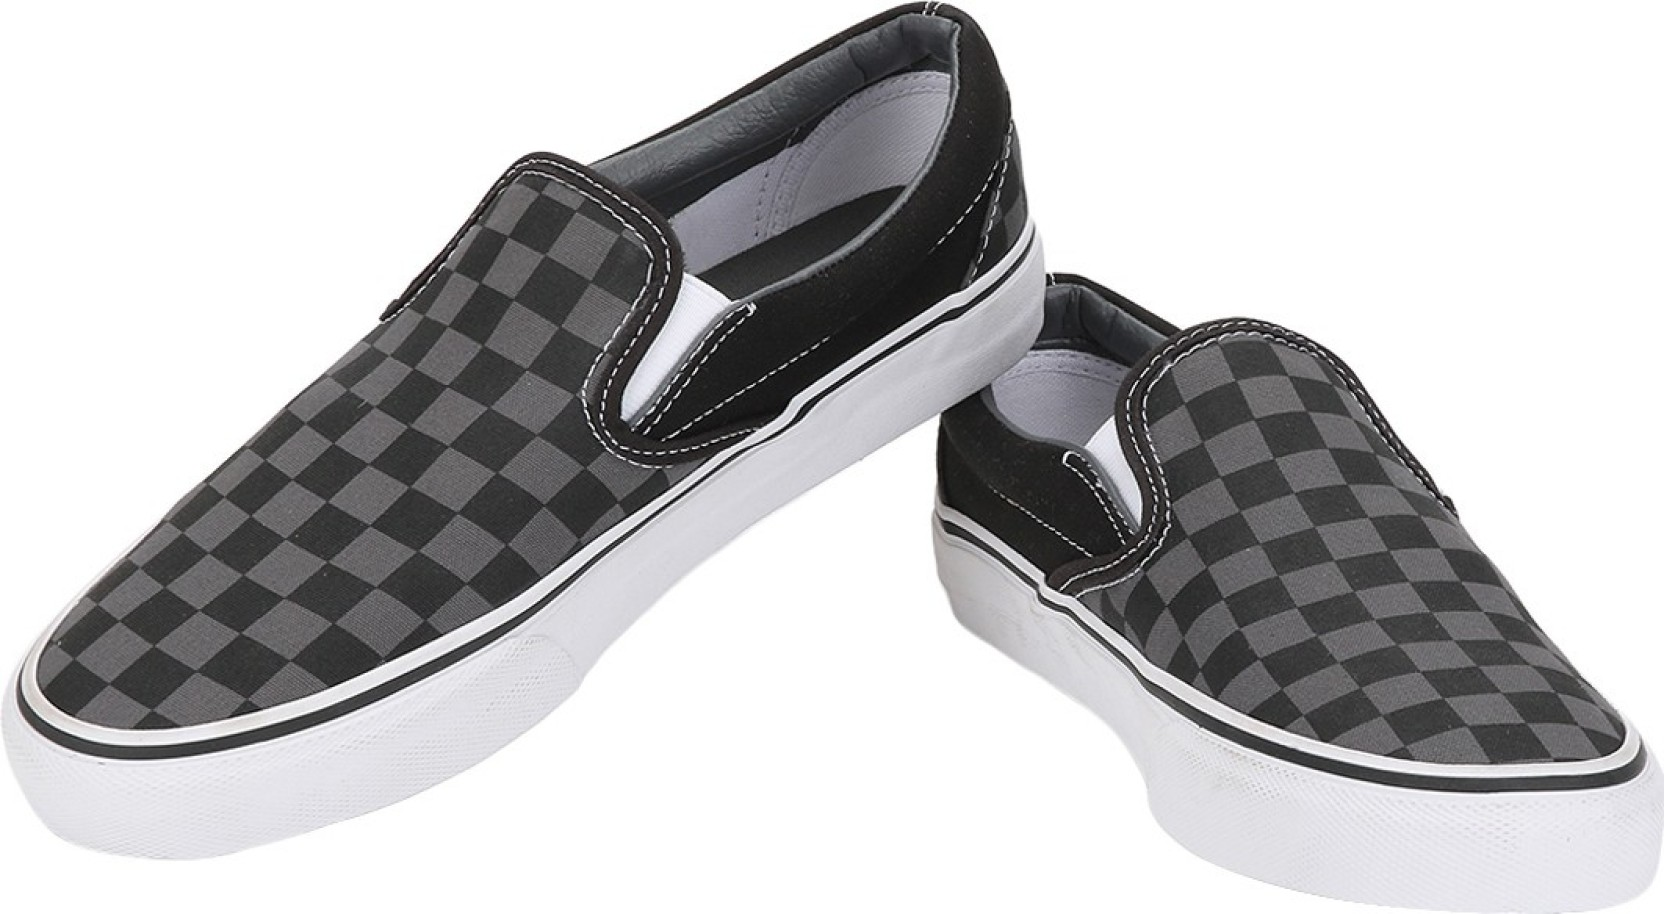 beb09934eb Vans Classic Slip-On Casual Shoes For Men - Buy Classic Black Color ...